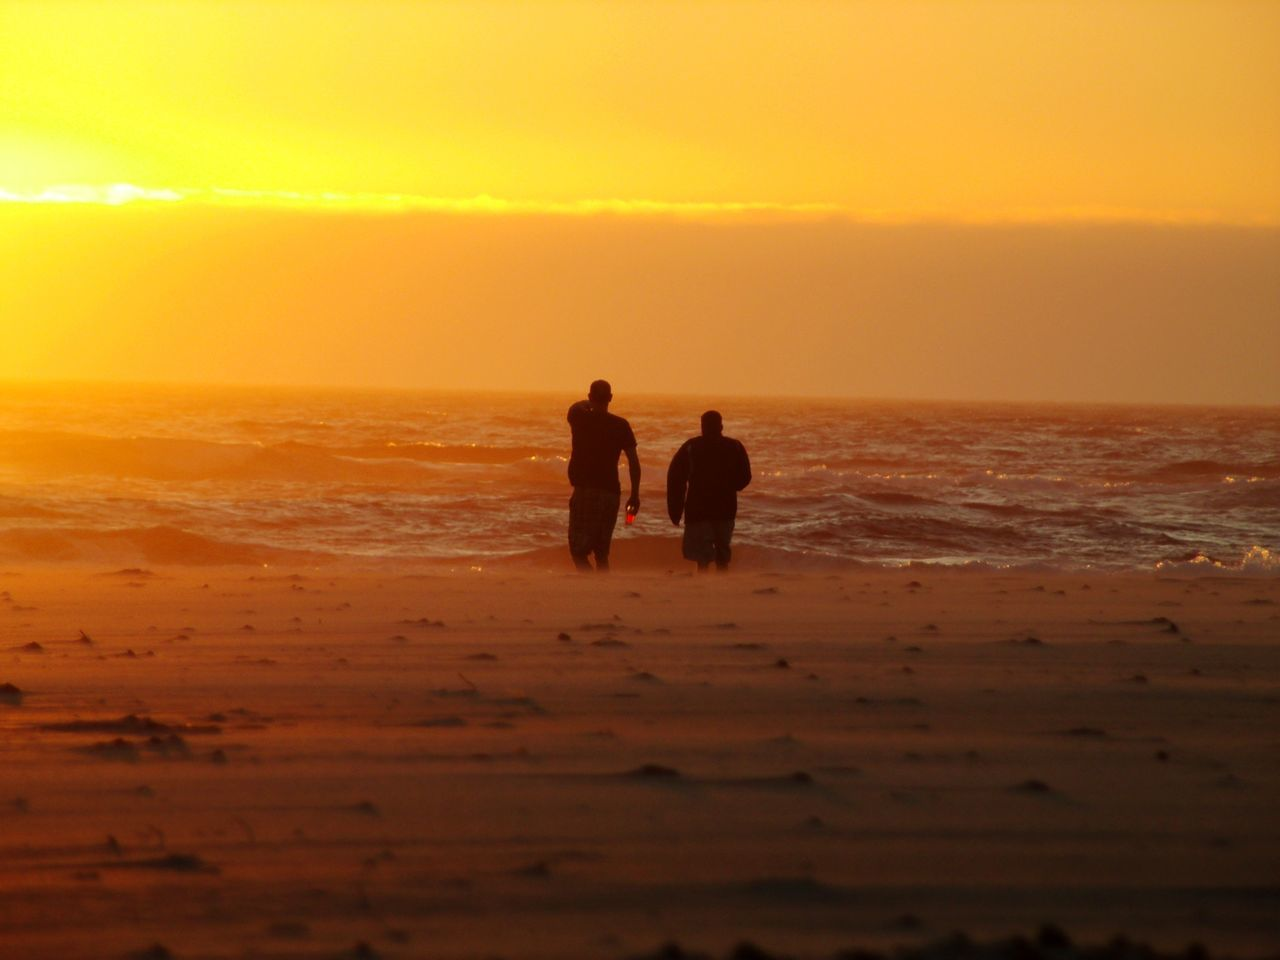 sunset, sea, silhouette, beach, nature, water, beauty in nature, scenics, togetherness, real people, leisure activity, horizon over water, men, sand, sky, standing, lifestyles, friendship, vacations, two people, outdoors, wave, day, people